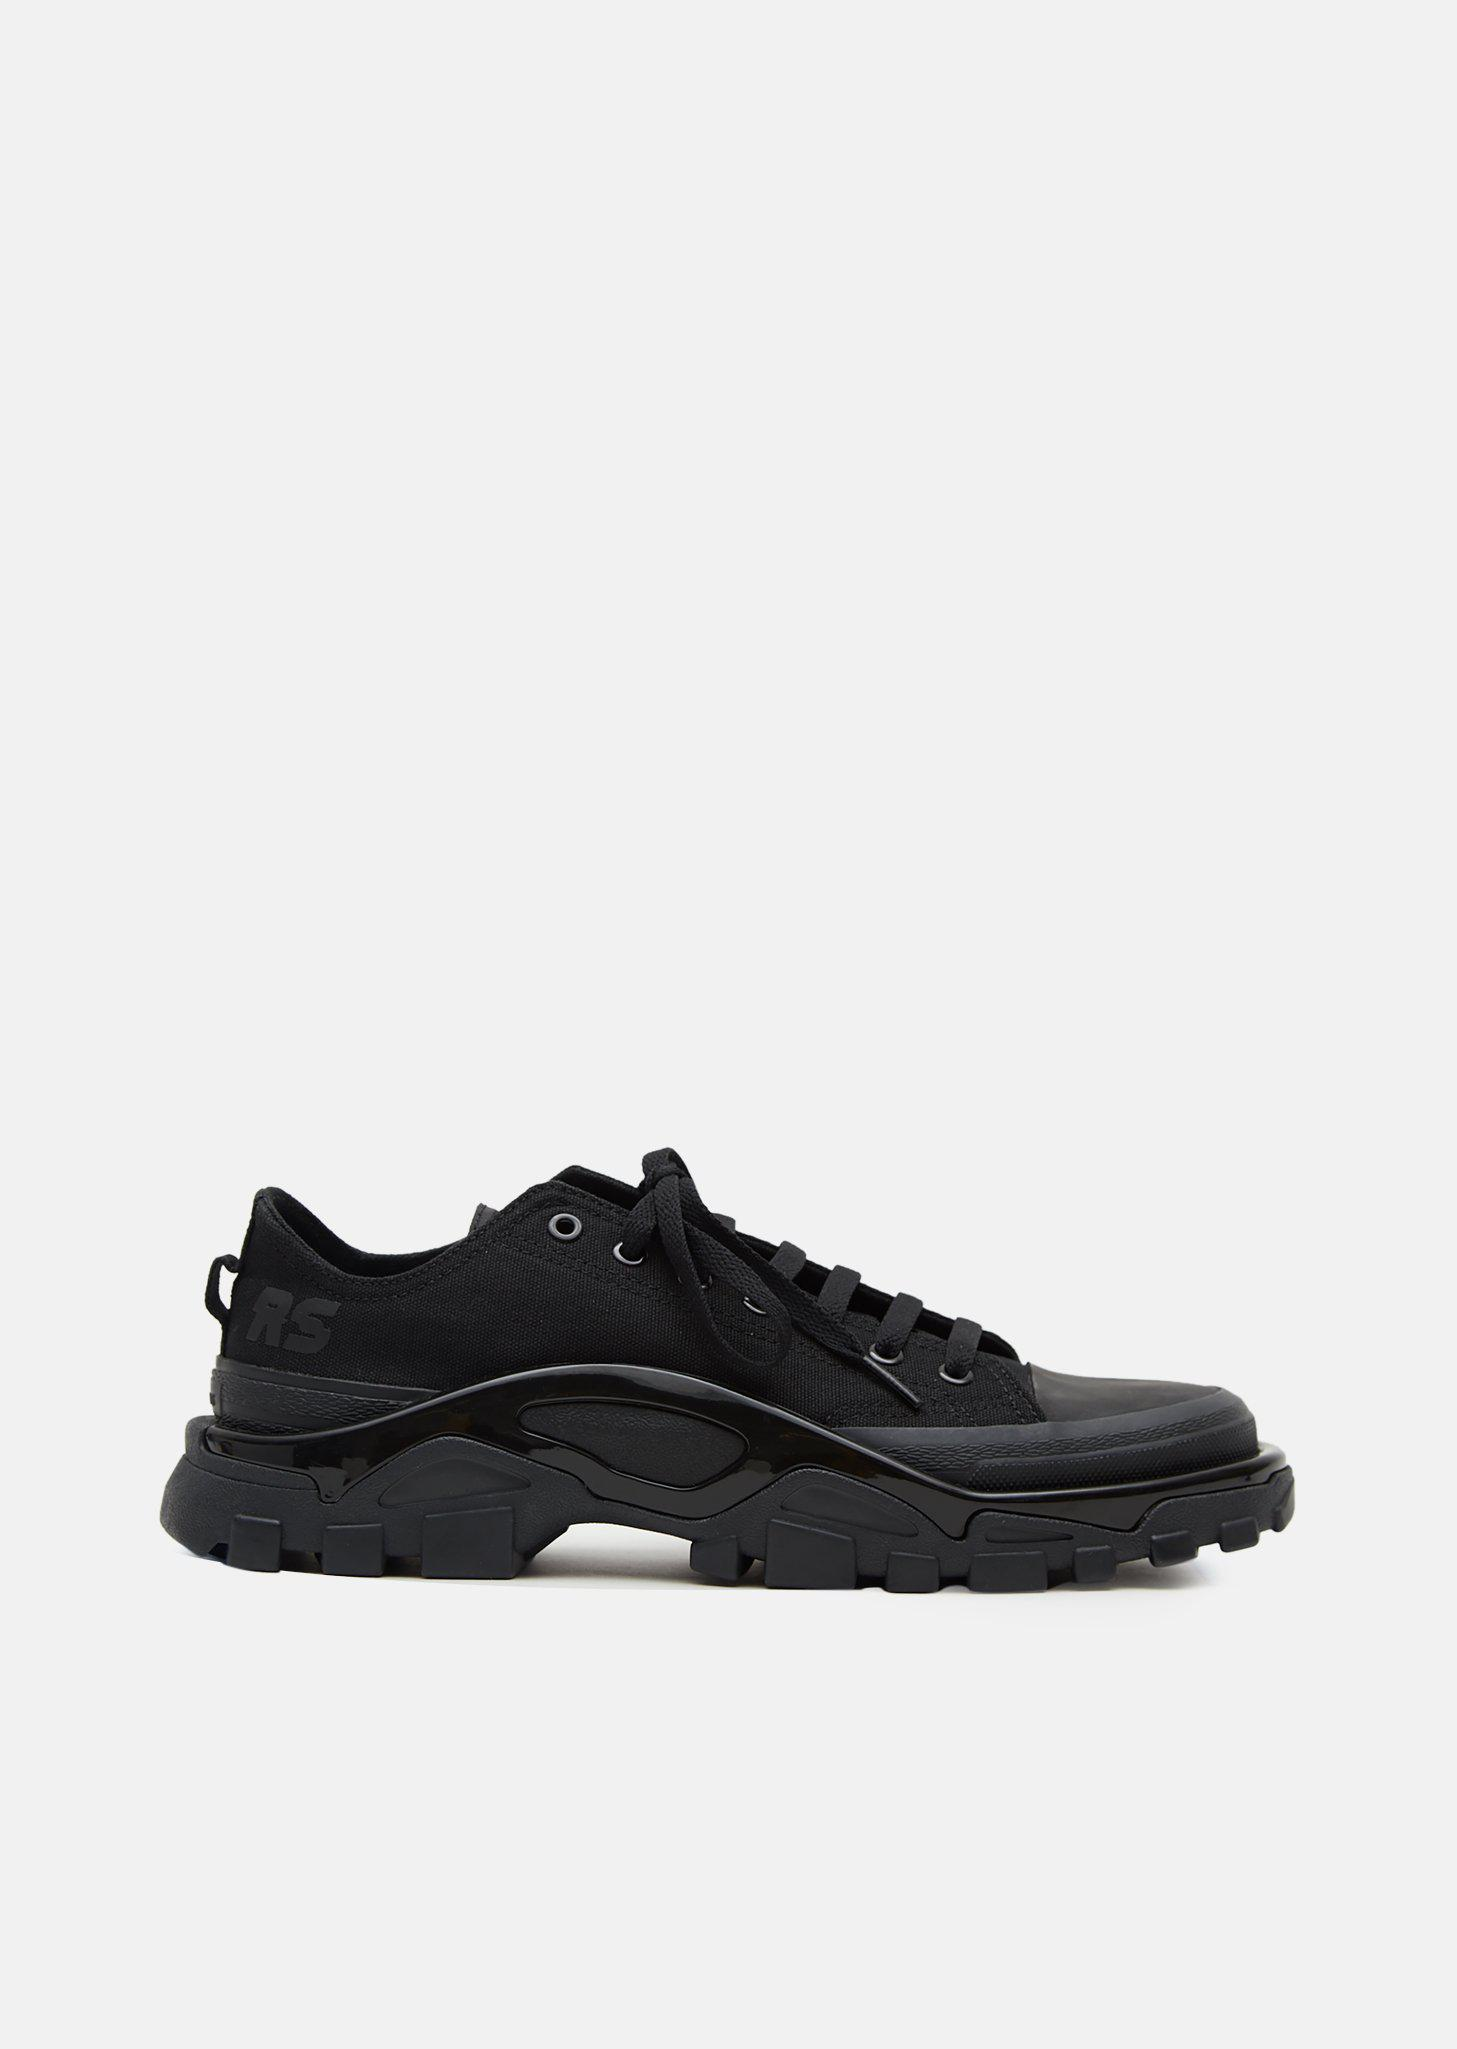 Lyst - adidas By Raf Simons Rs Detroit Runner Sneakers in Black 00a8f3912